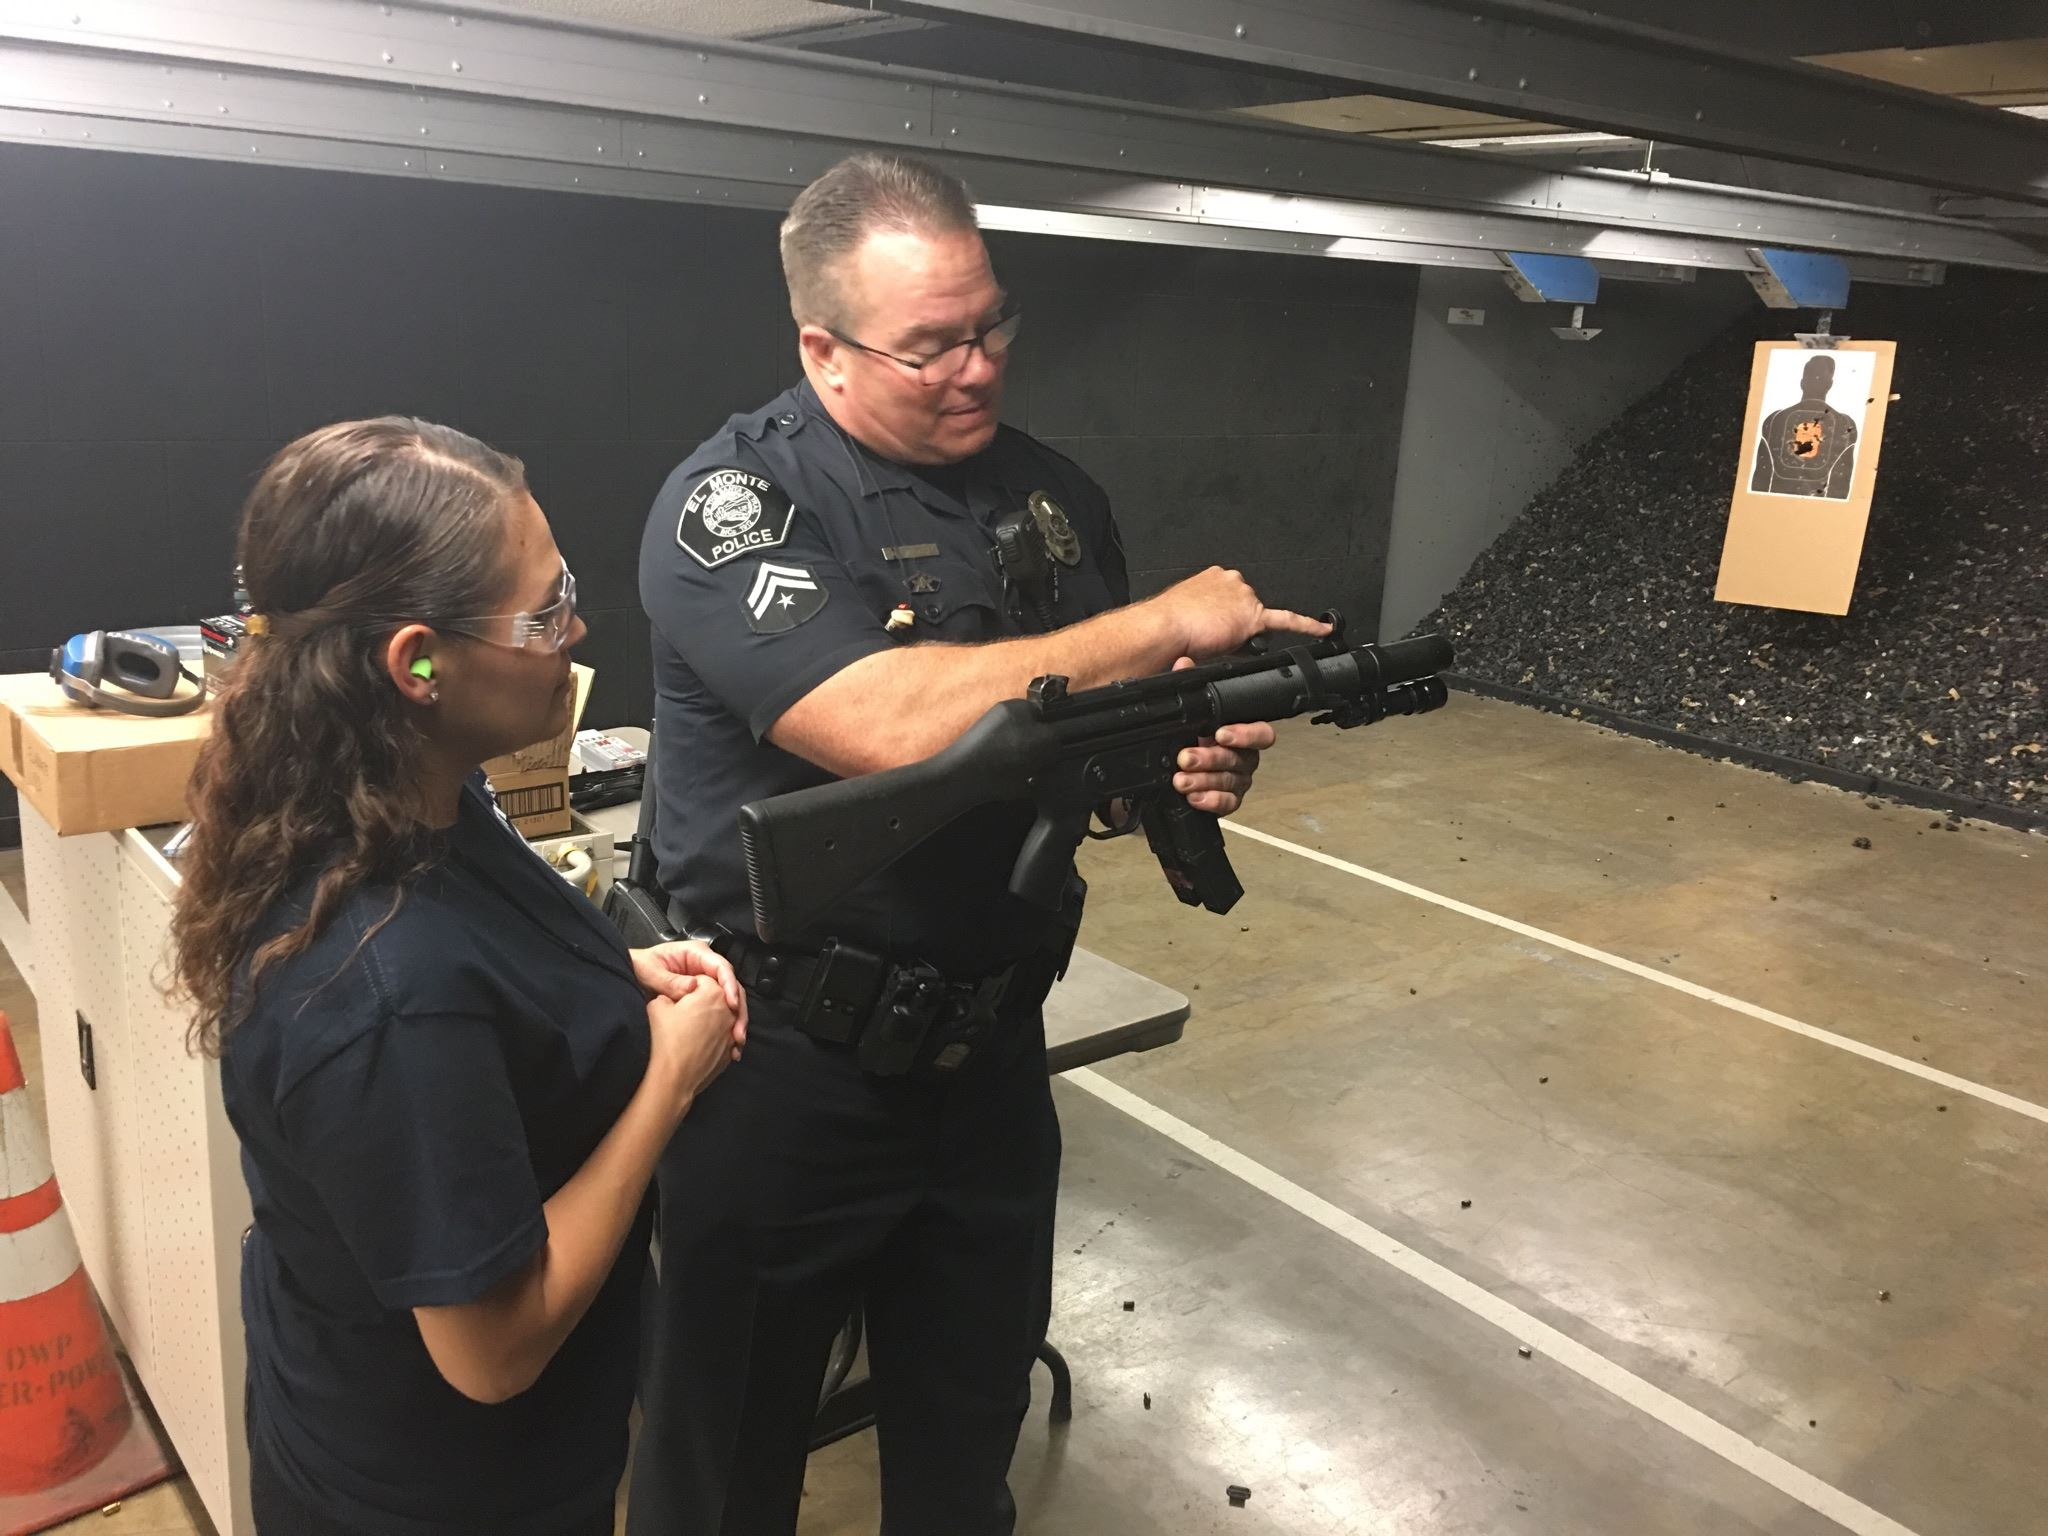 Officer Showing Woman a Part of a Gun at Shooting Target Space